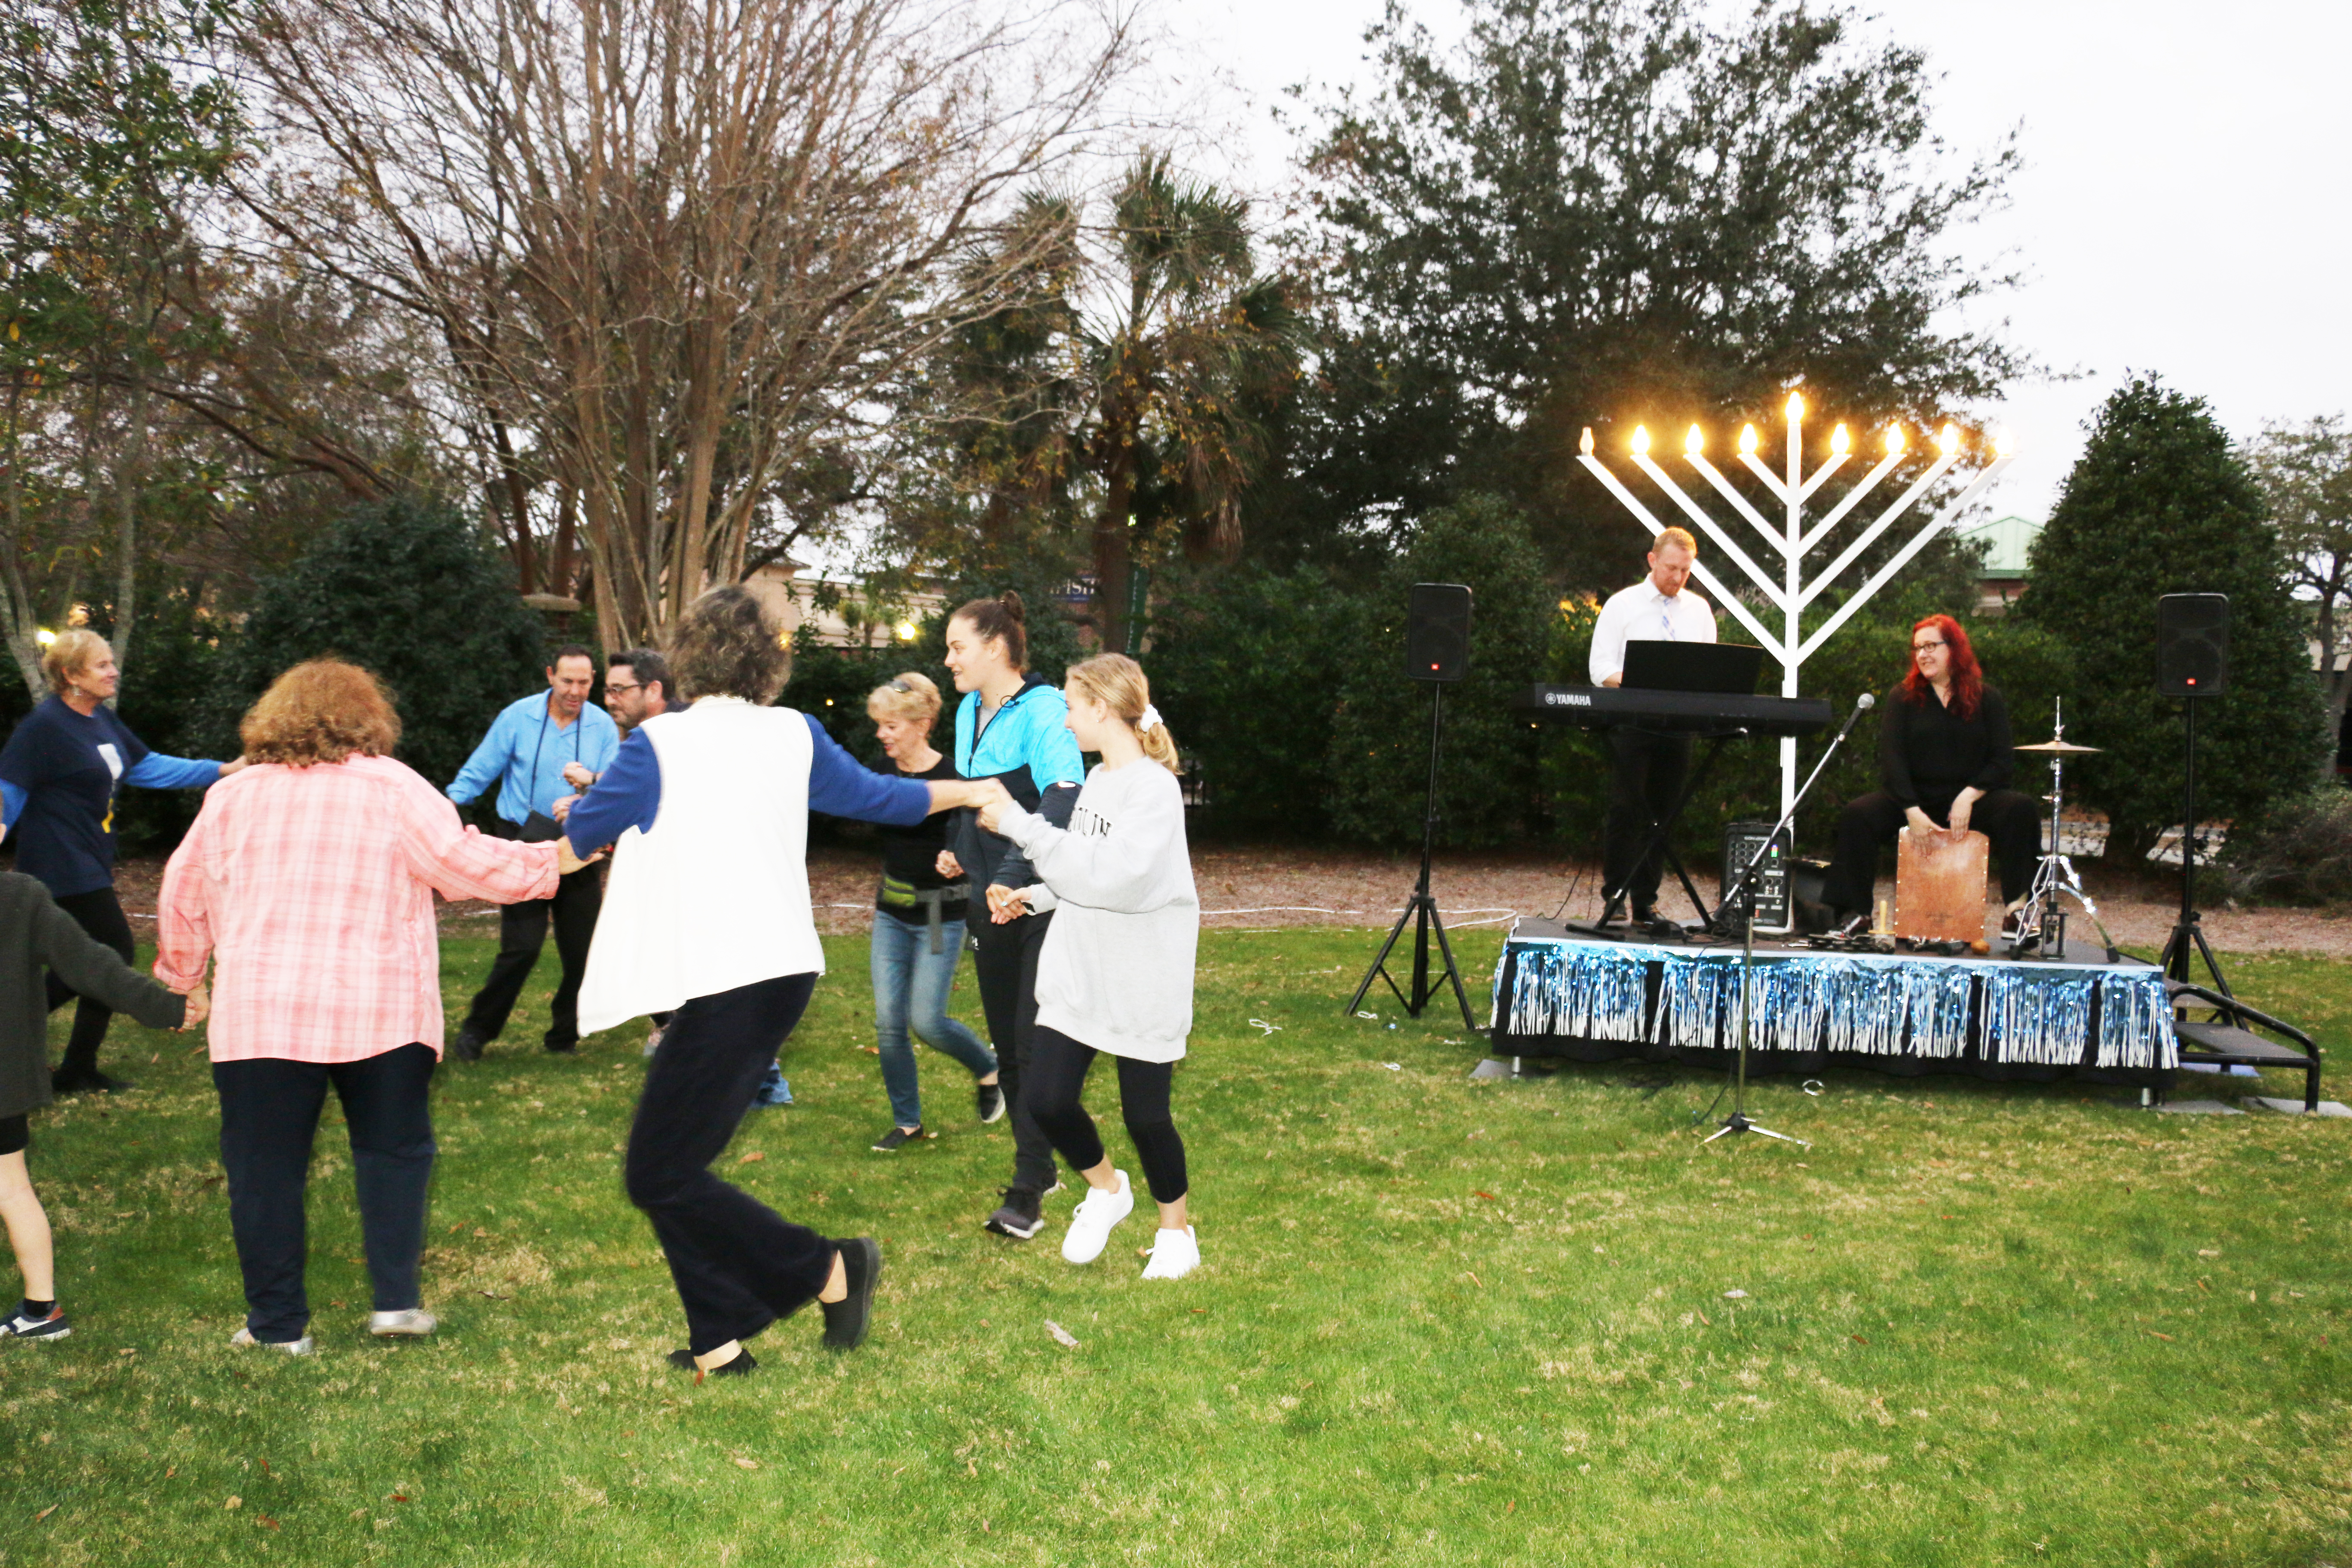 Attendees danced in celebration of miracles after the lighting of the candles on the Menorah. Black Tie owners and musicians Braeden Kershner and Kris Manning donated their musical skills for the evening.